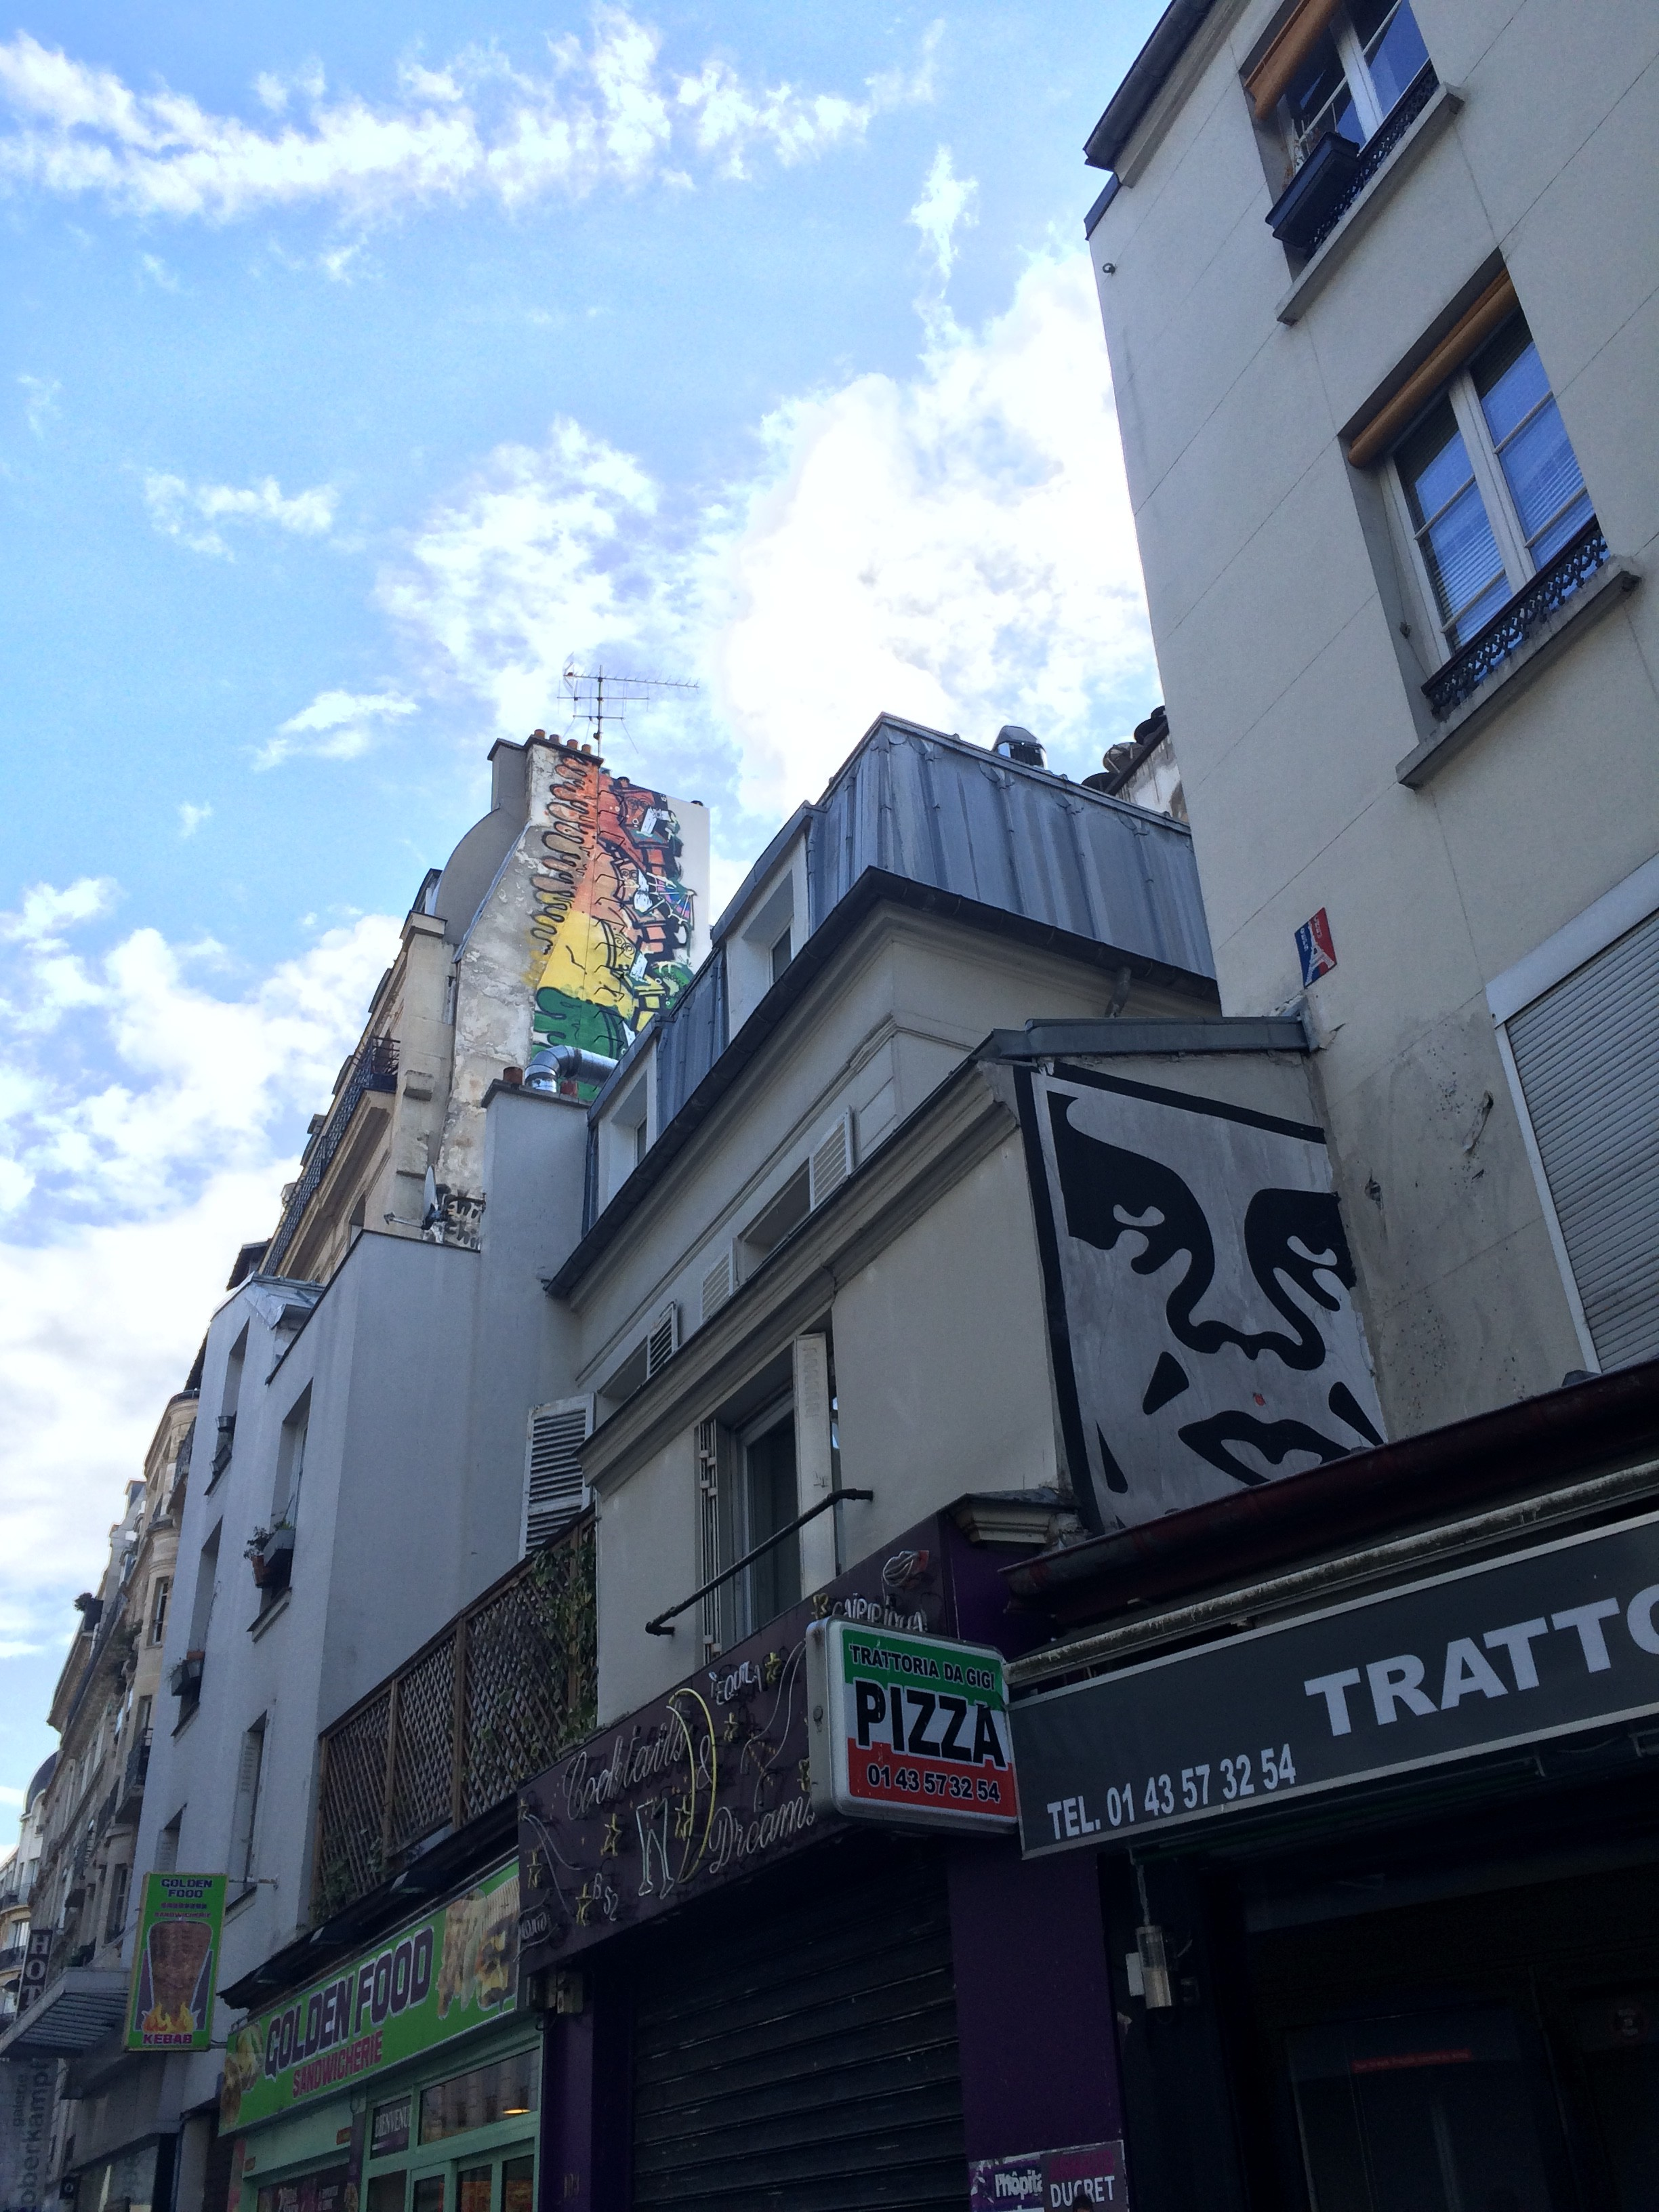 Paris Street Art by Shepard Fairey OBEY and Chiotte in Oberkampf